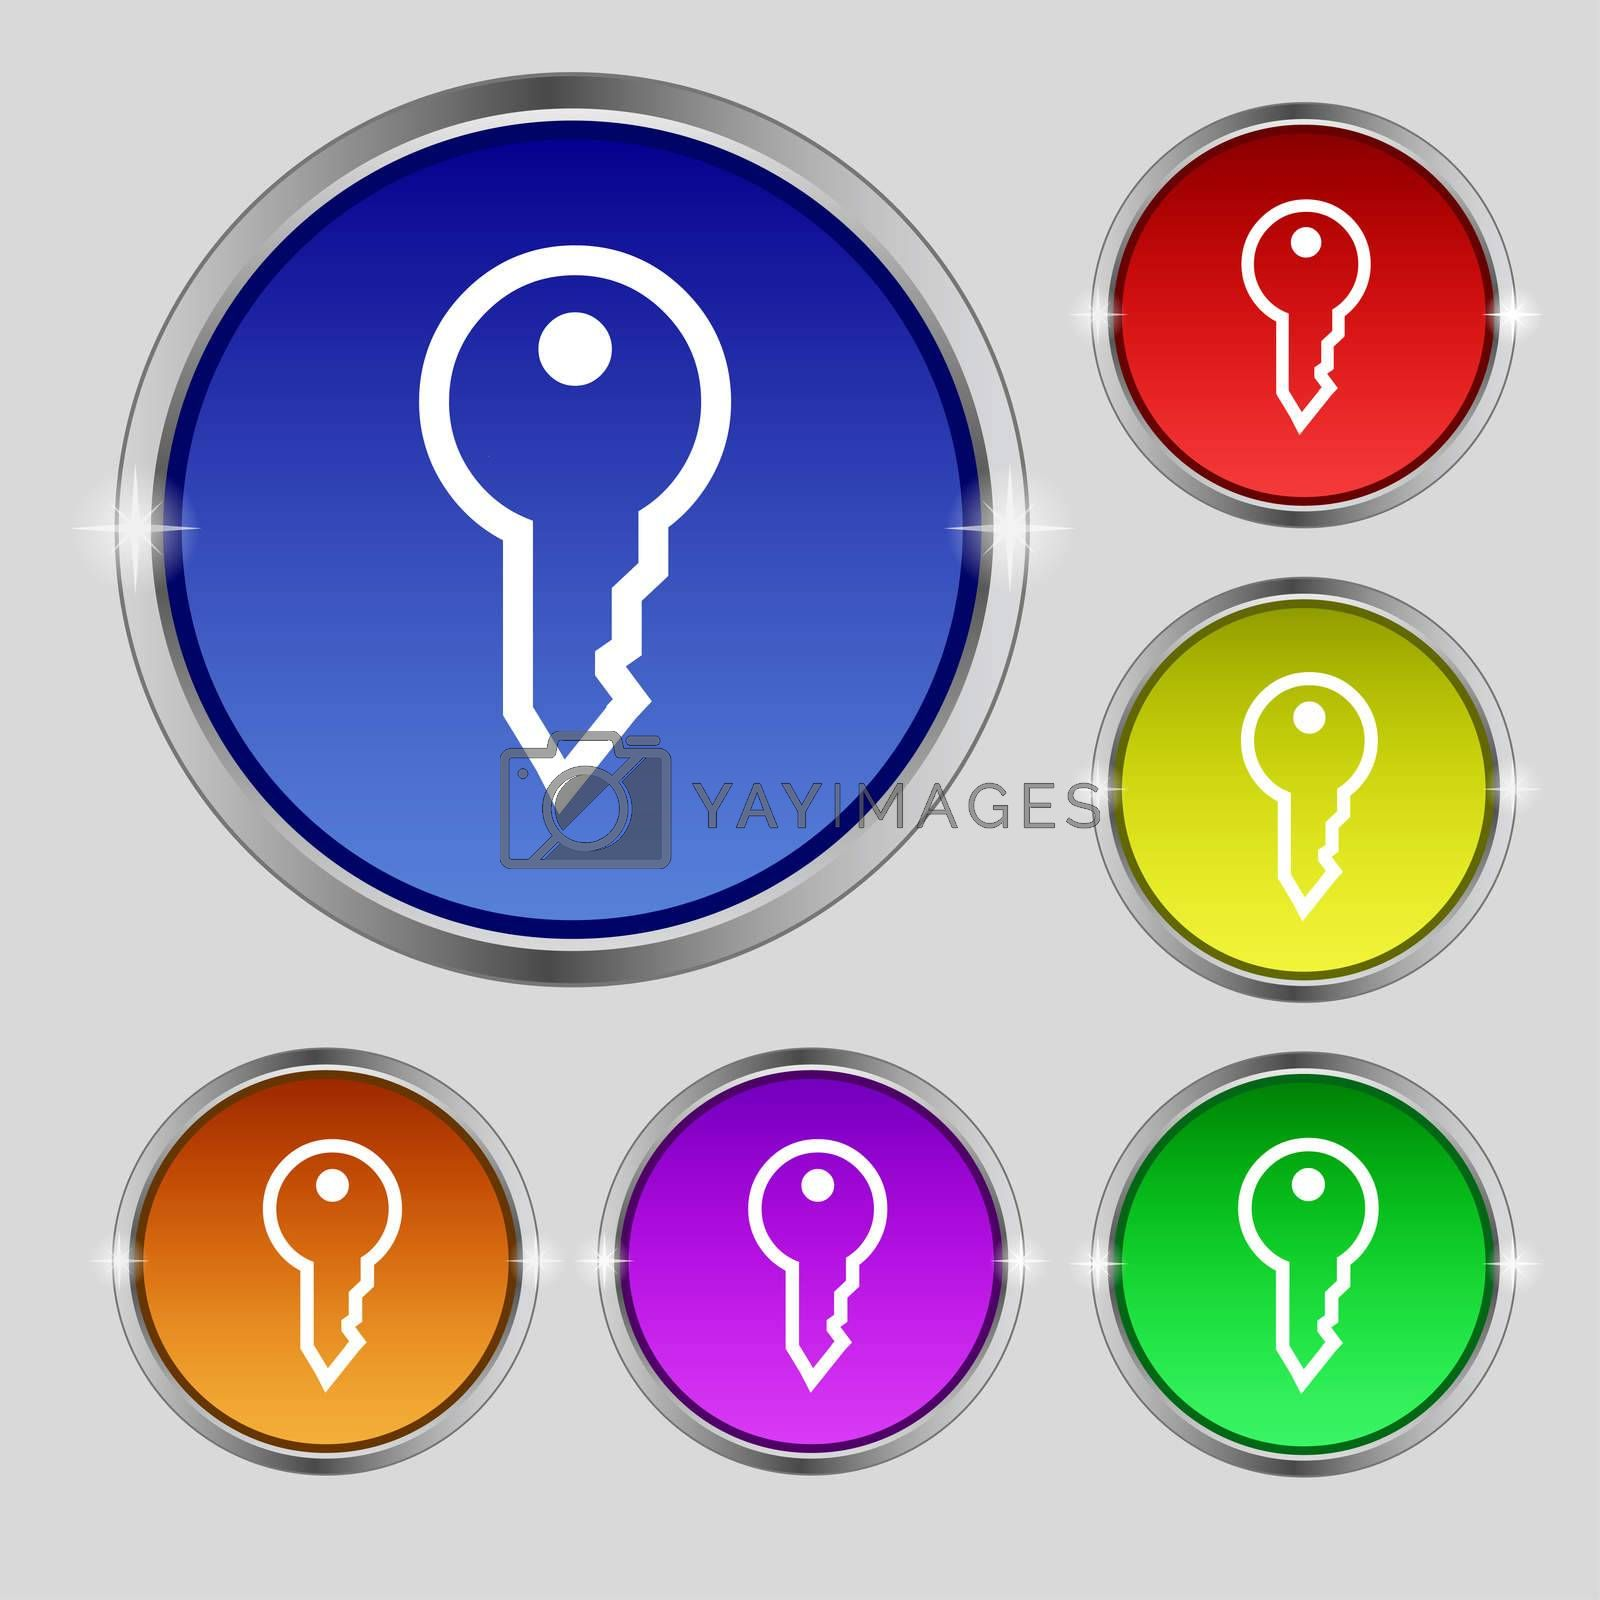 Key icon sign. Round symbol on bright colourful buttons.  by Serhii Lohvyniuk